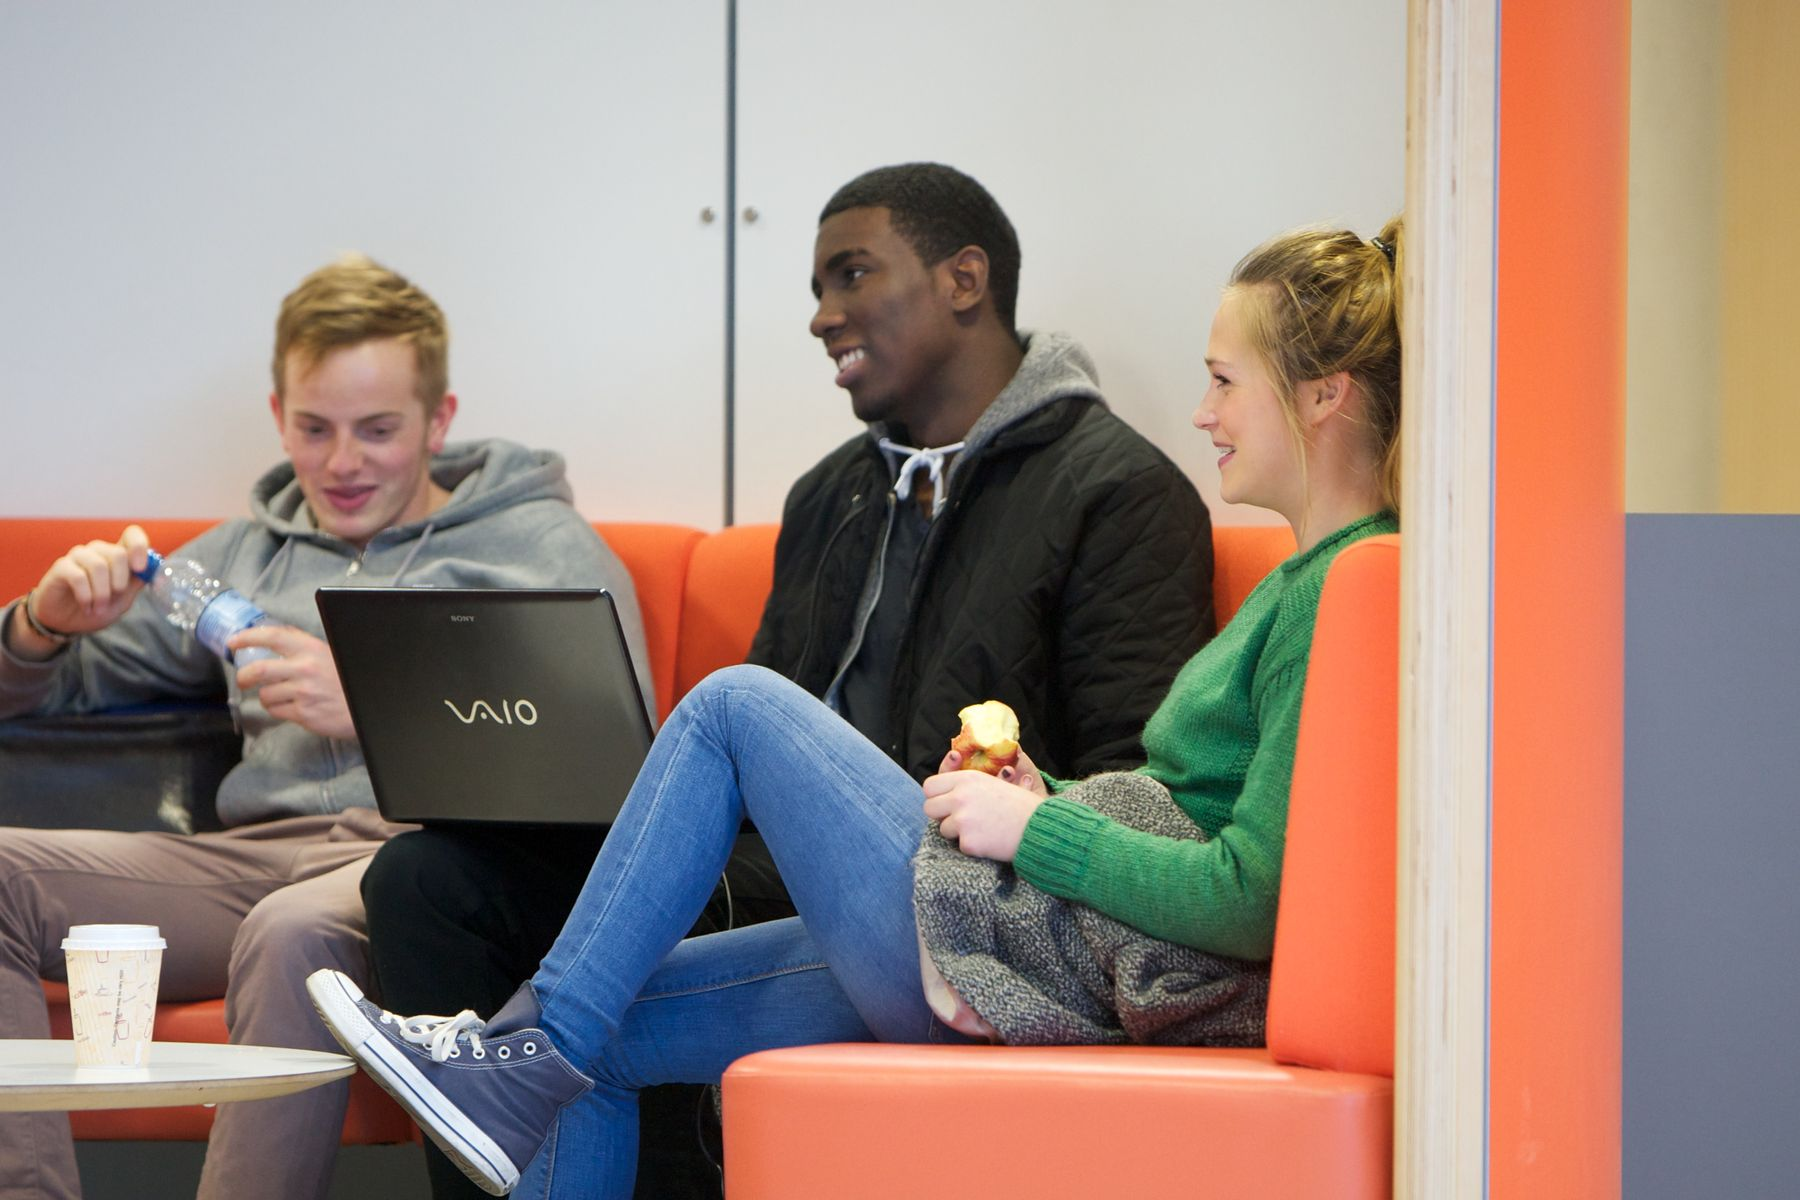 Students in a breakout area